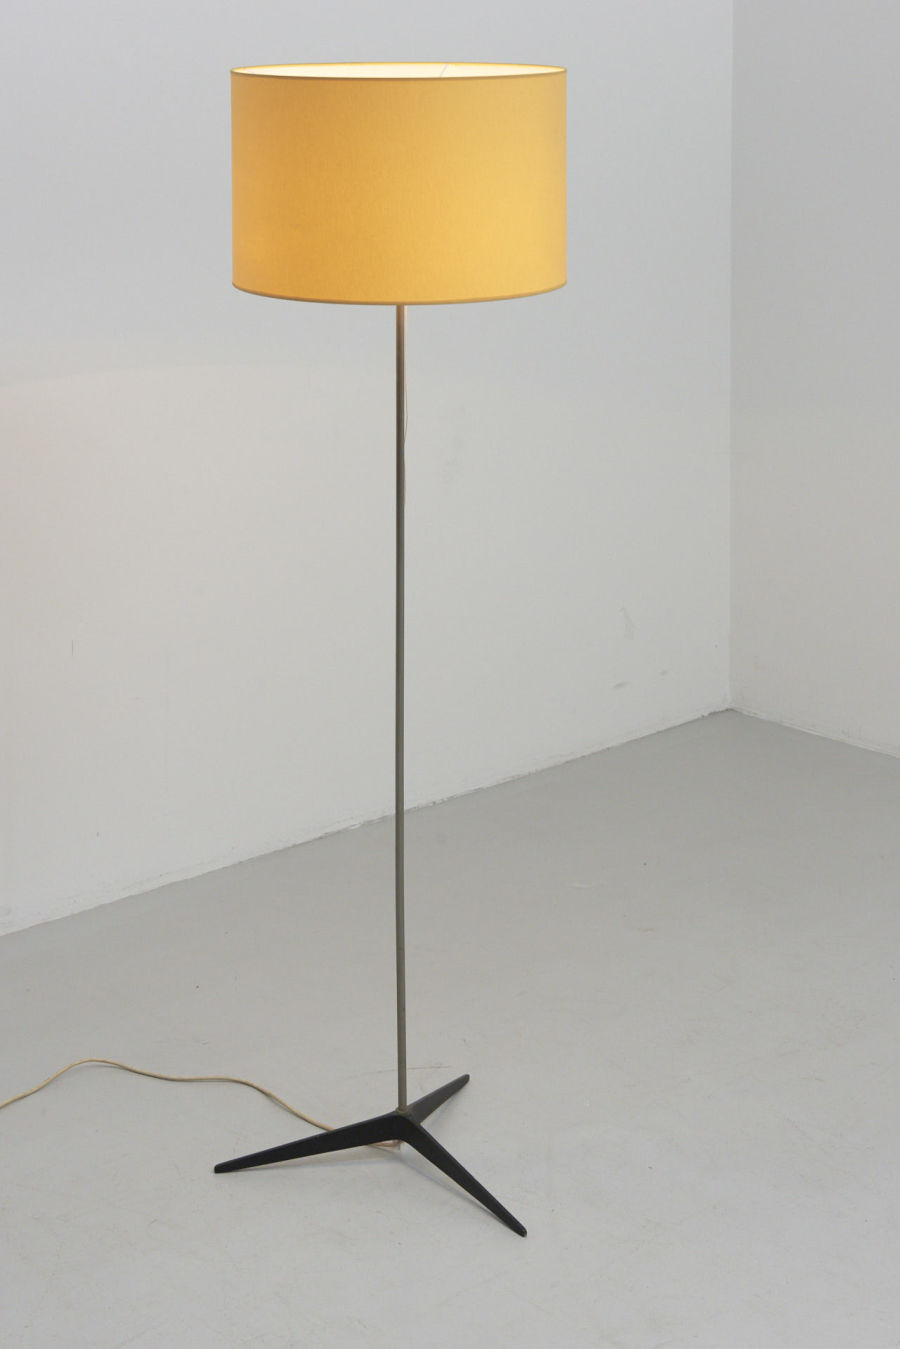 modestfurniture-vintage-1888-floor-lamp-3-star-foot02